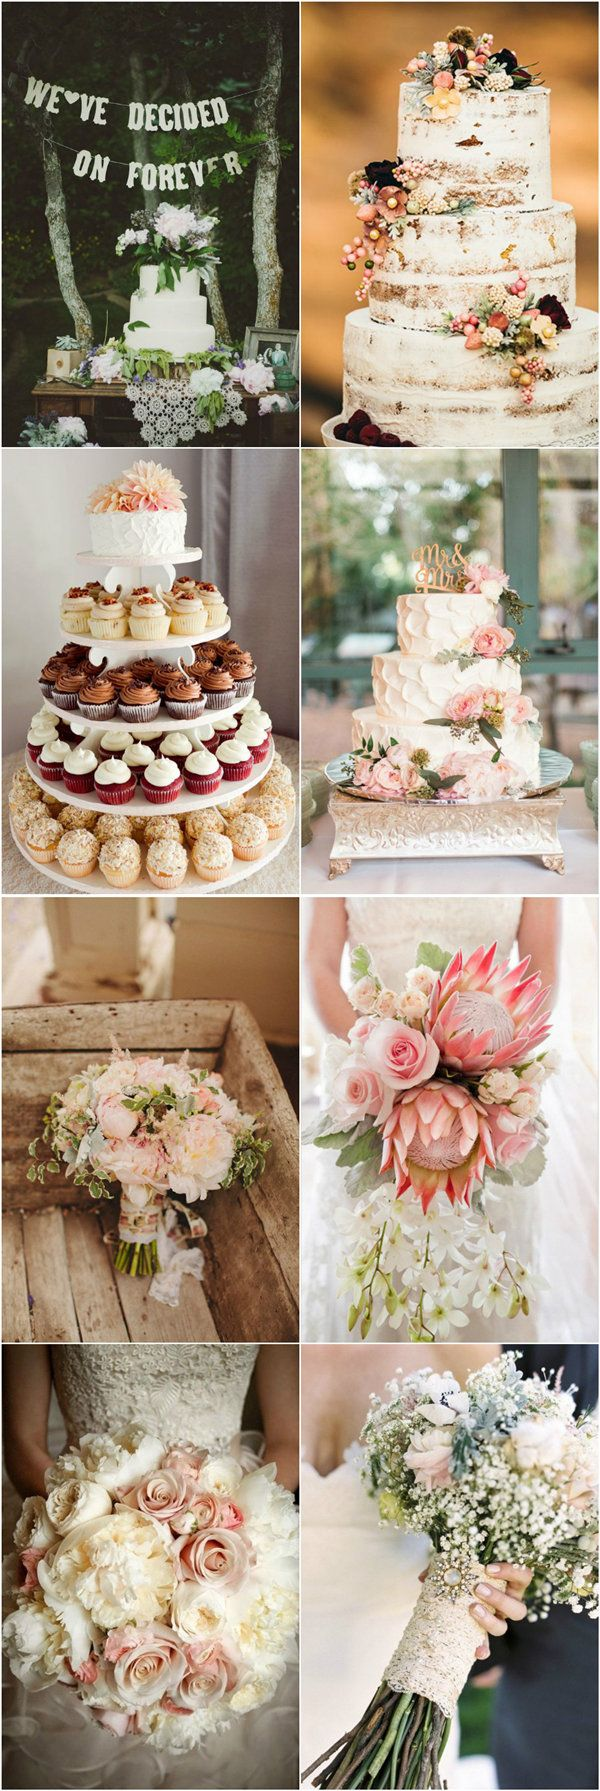 25 swoon worthy spring amp summer wedding bouquets tulle amp chantilly - Romantic Vintage Wedding Cake And Bouquets Ideas